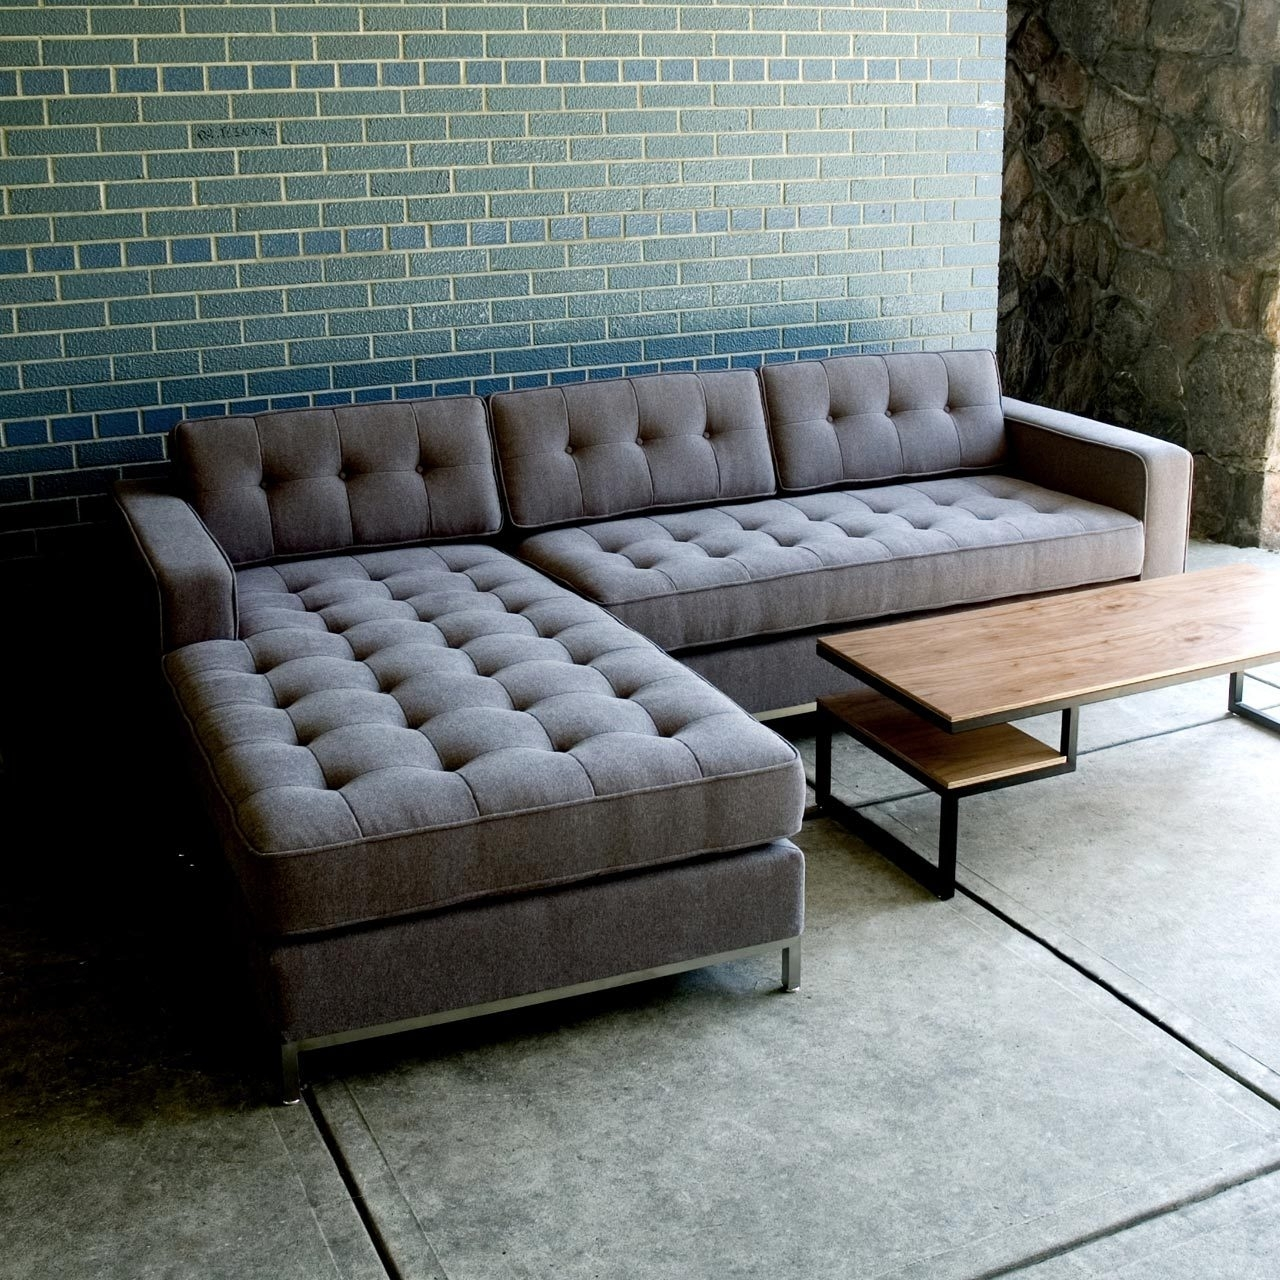 Pigment - Gus Modern Jane Bi-Sectional Sofa, (Http://www.shoppigment intended for Jane Bi Sectional Sofas (Image 8 of 10)